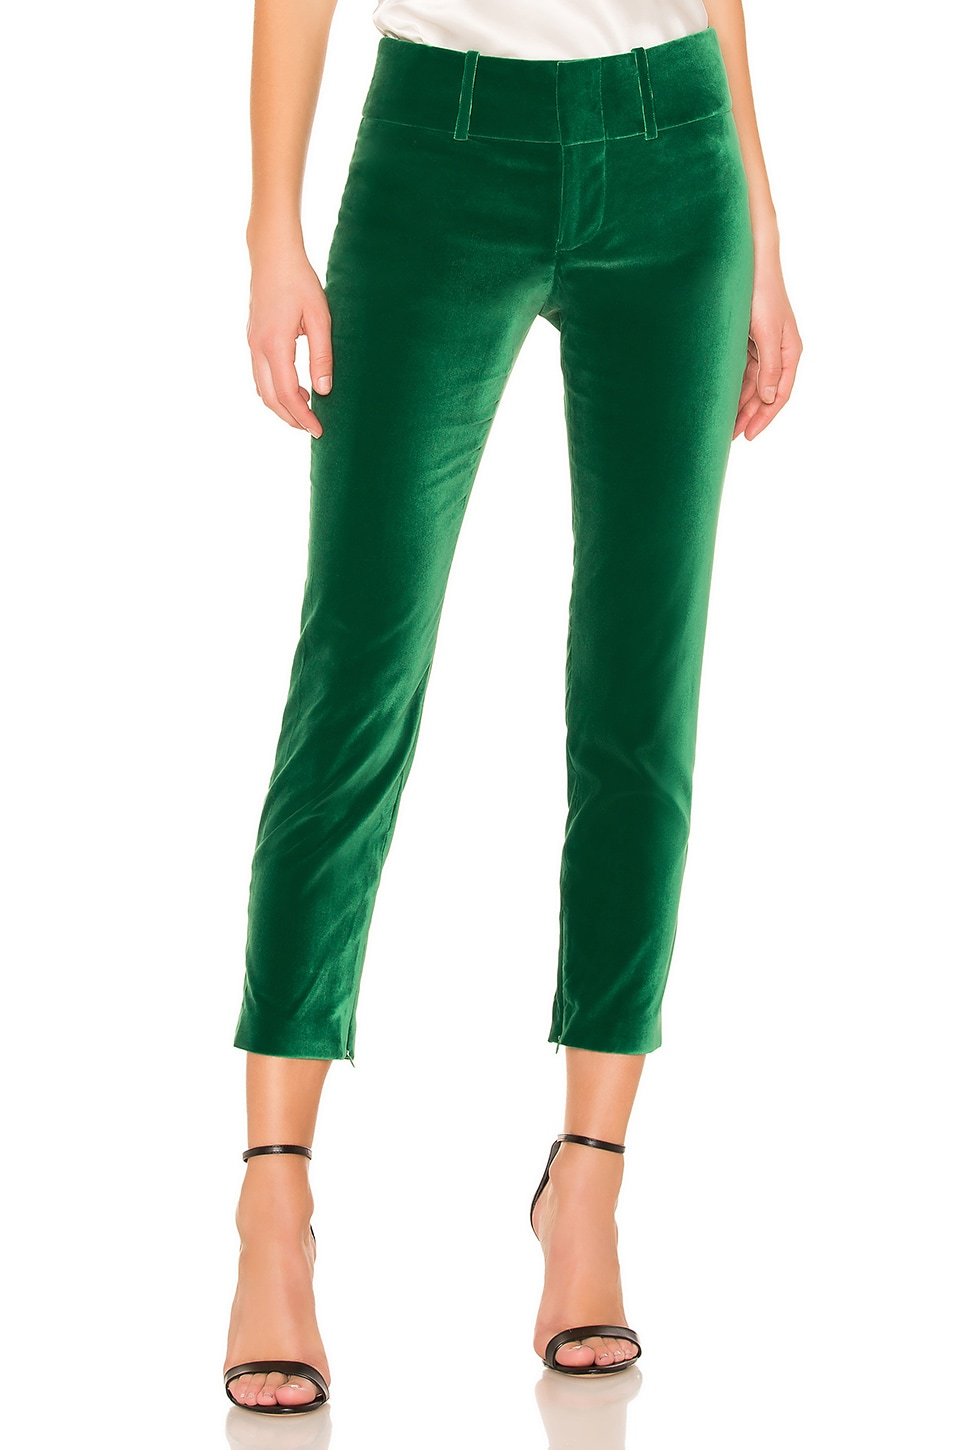 Alice + Olivia Stacey Velvet Pant in Juniper